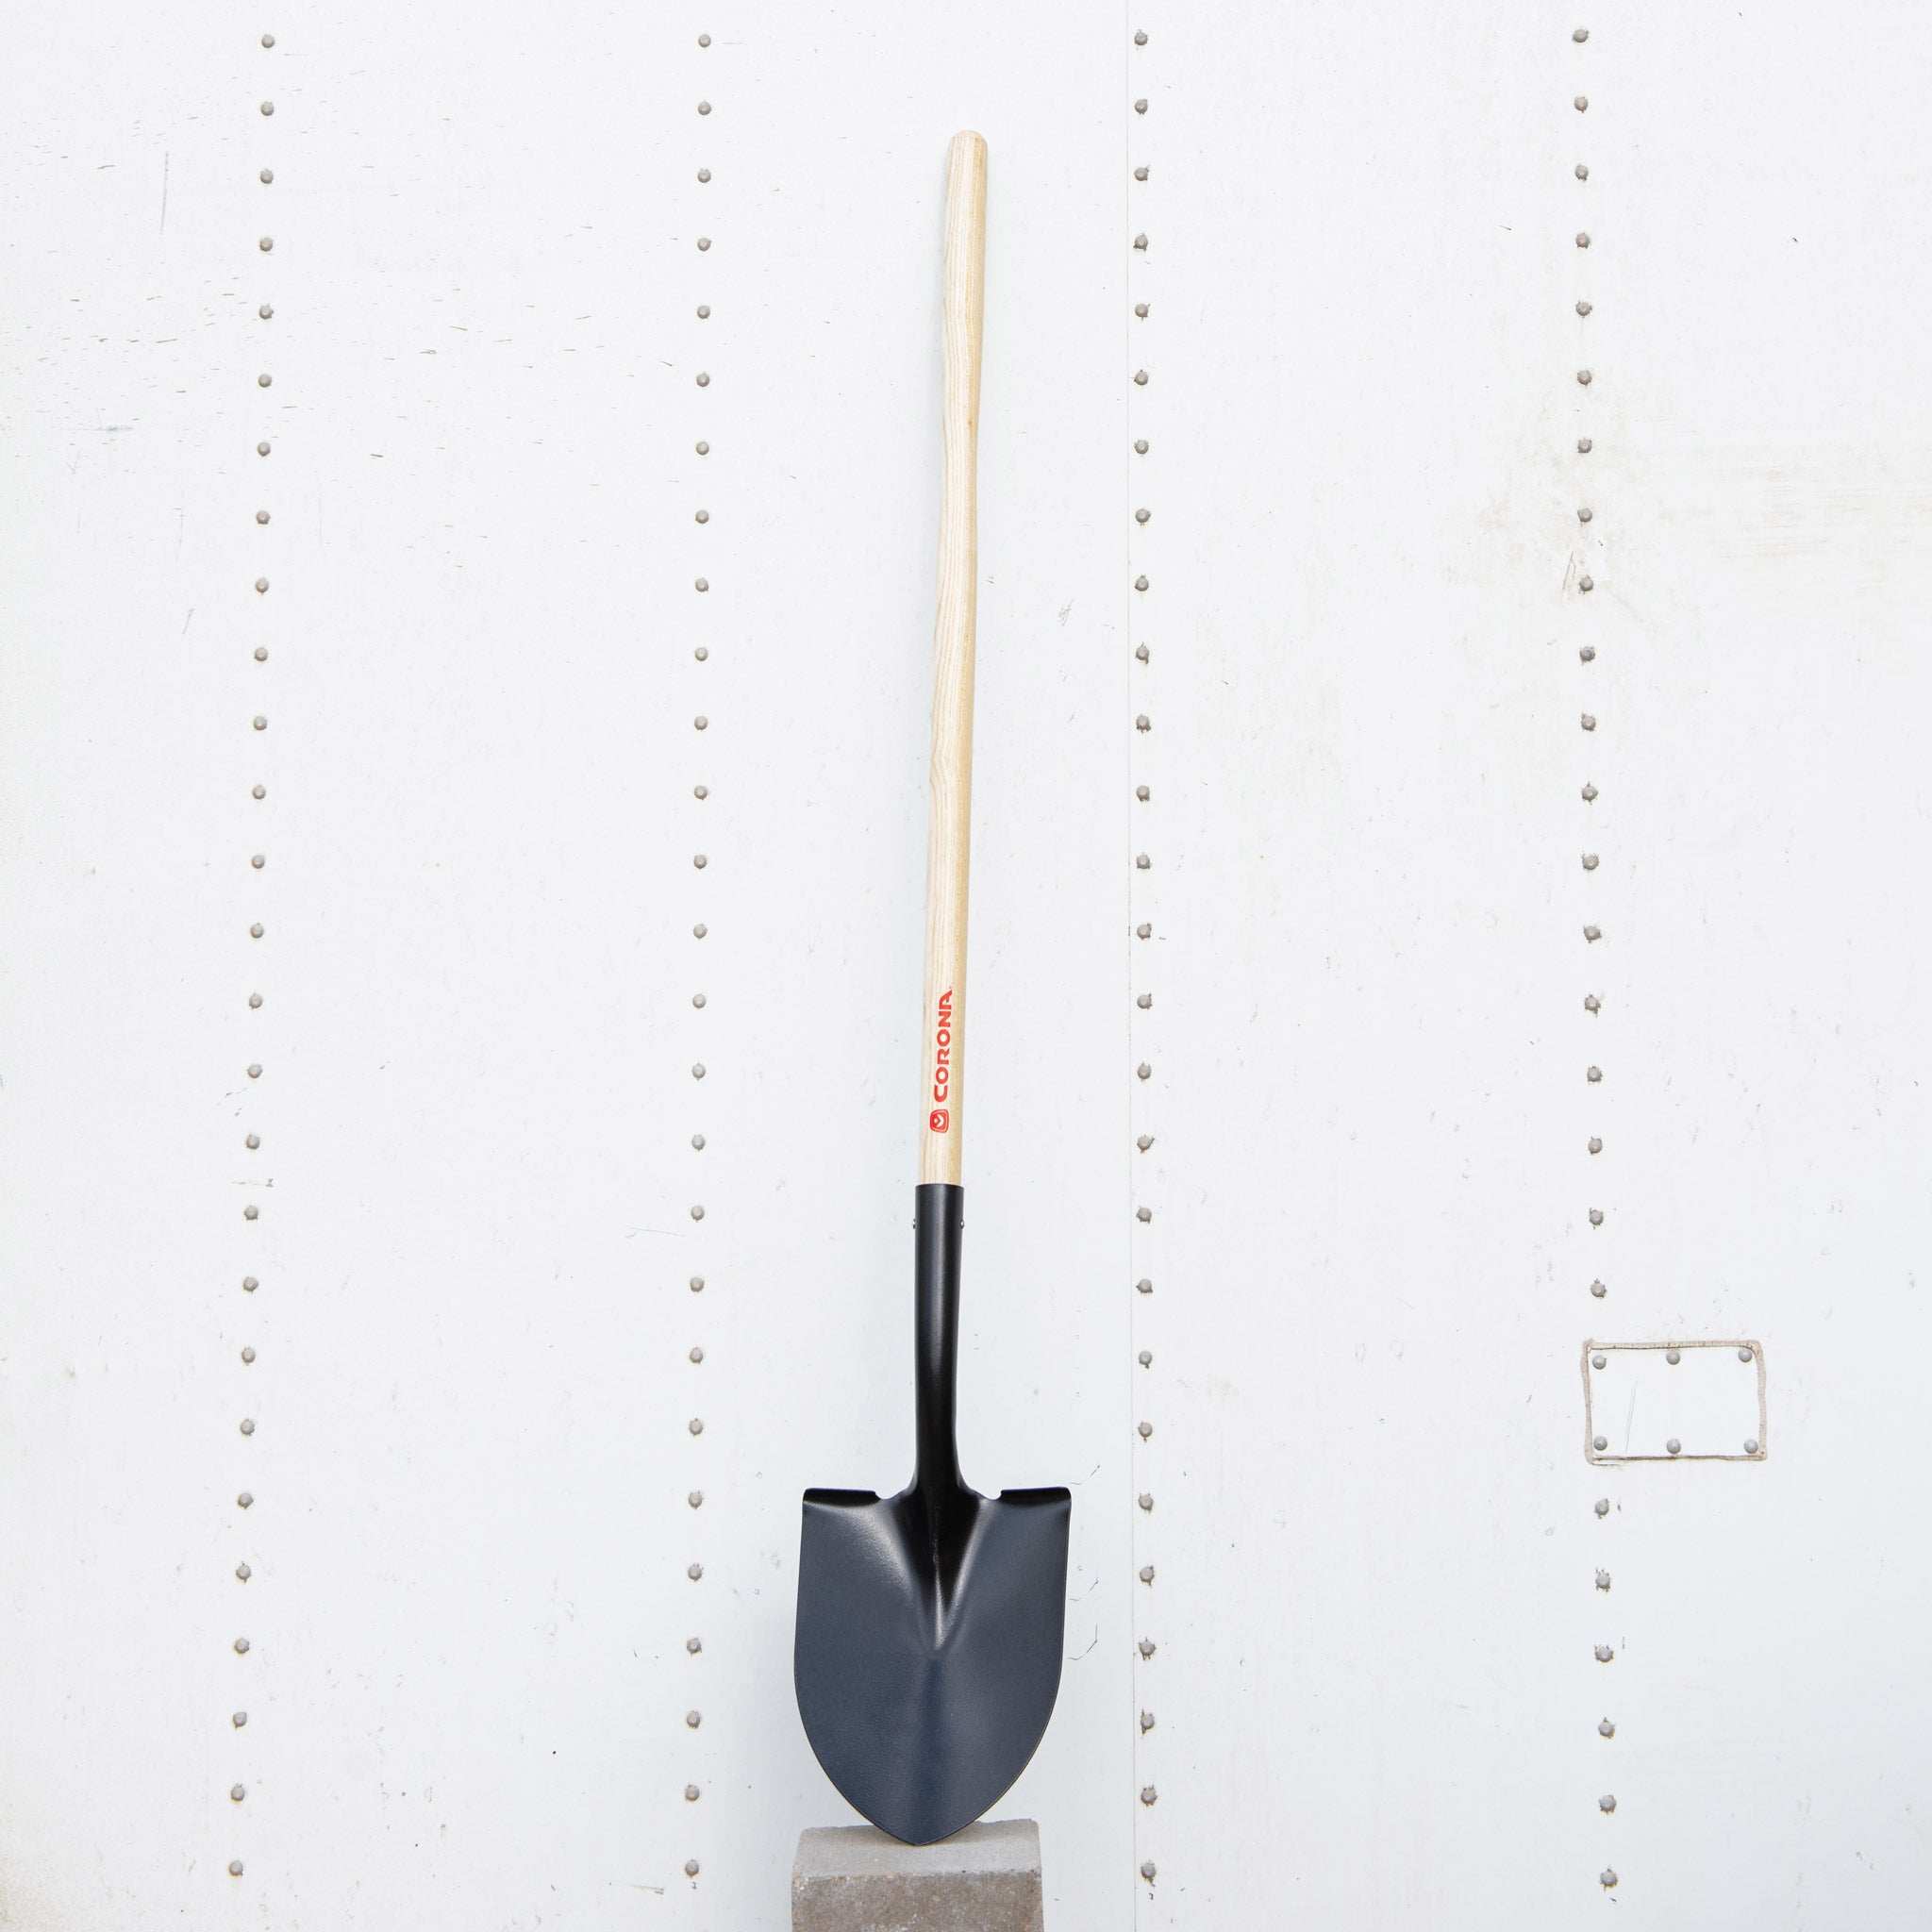 Corona Round-Point Shovel – Wooden Handle